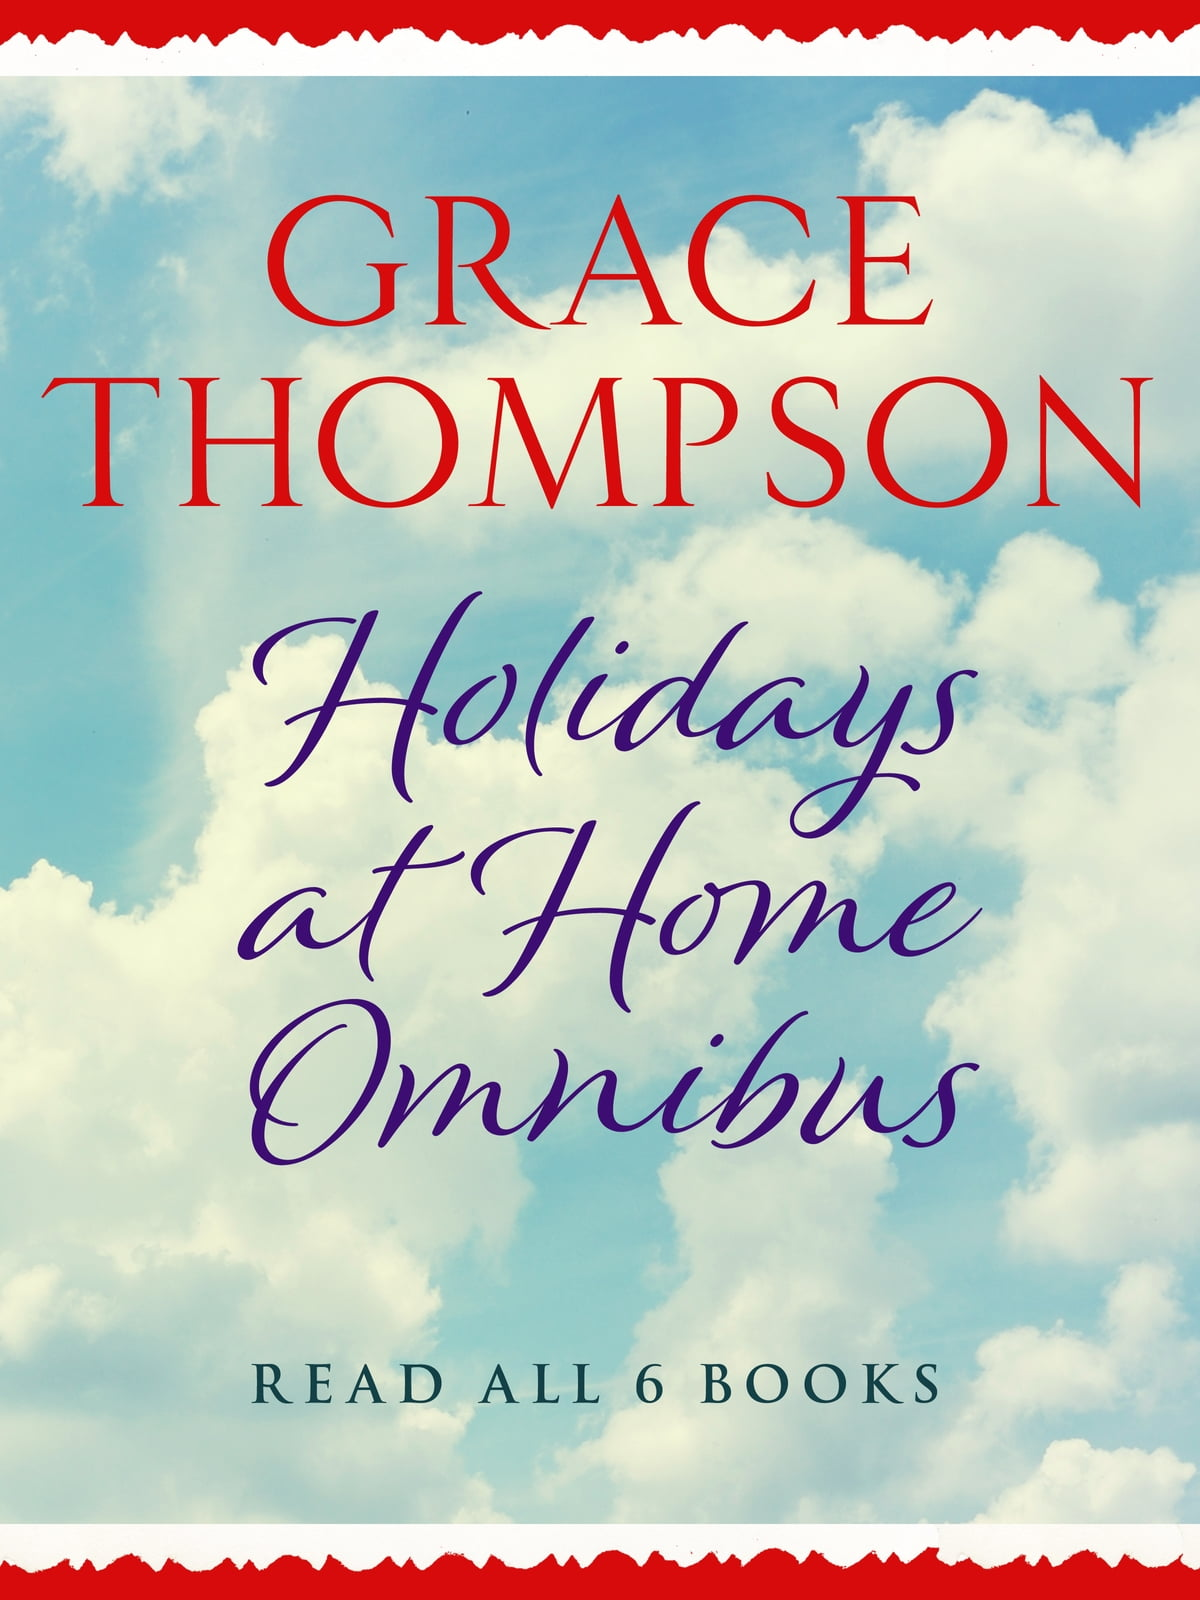 Holidays at home omnibus ebook by grace thompson 9781911420934 holidays at home omnibus ebook by grace thompson 9781911420934 rakuten kobo fandeluxe Ebook collections